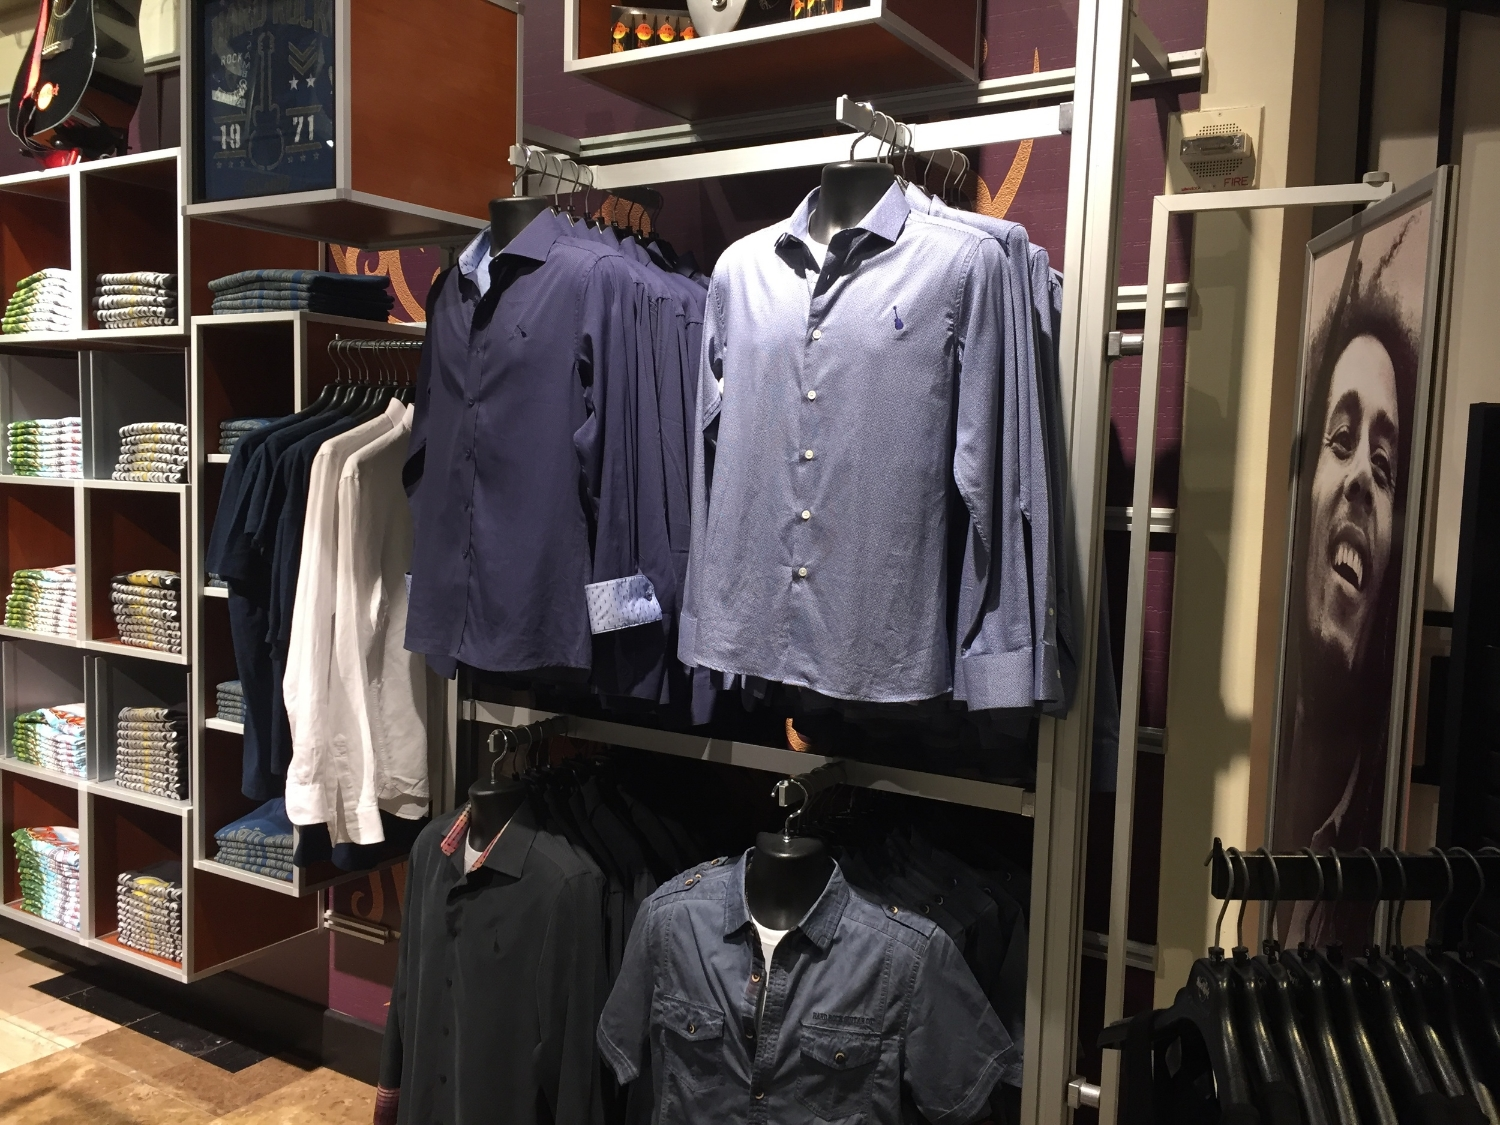 Men's Apparel at Rock Shop in Hard Rock Hotel Orlando